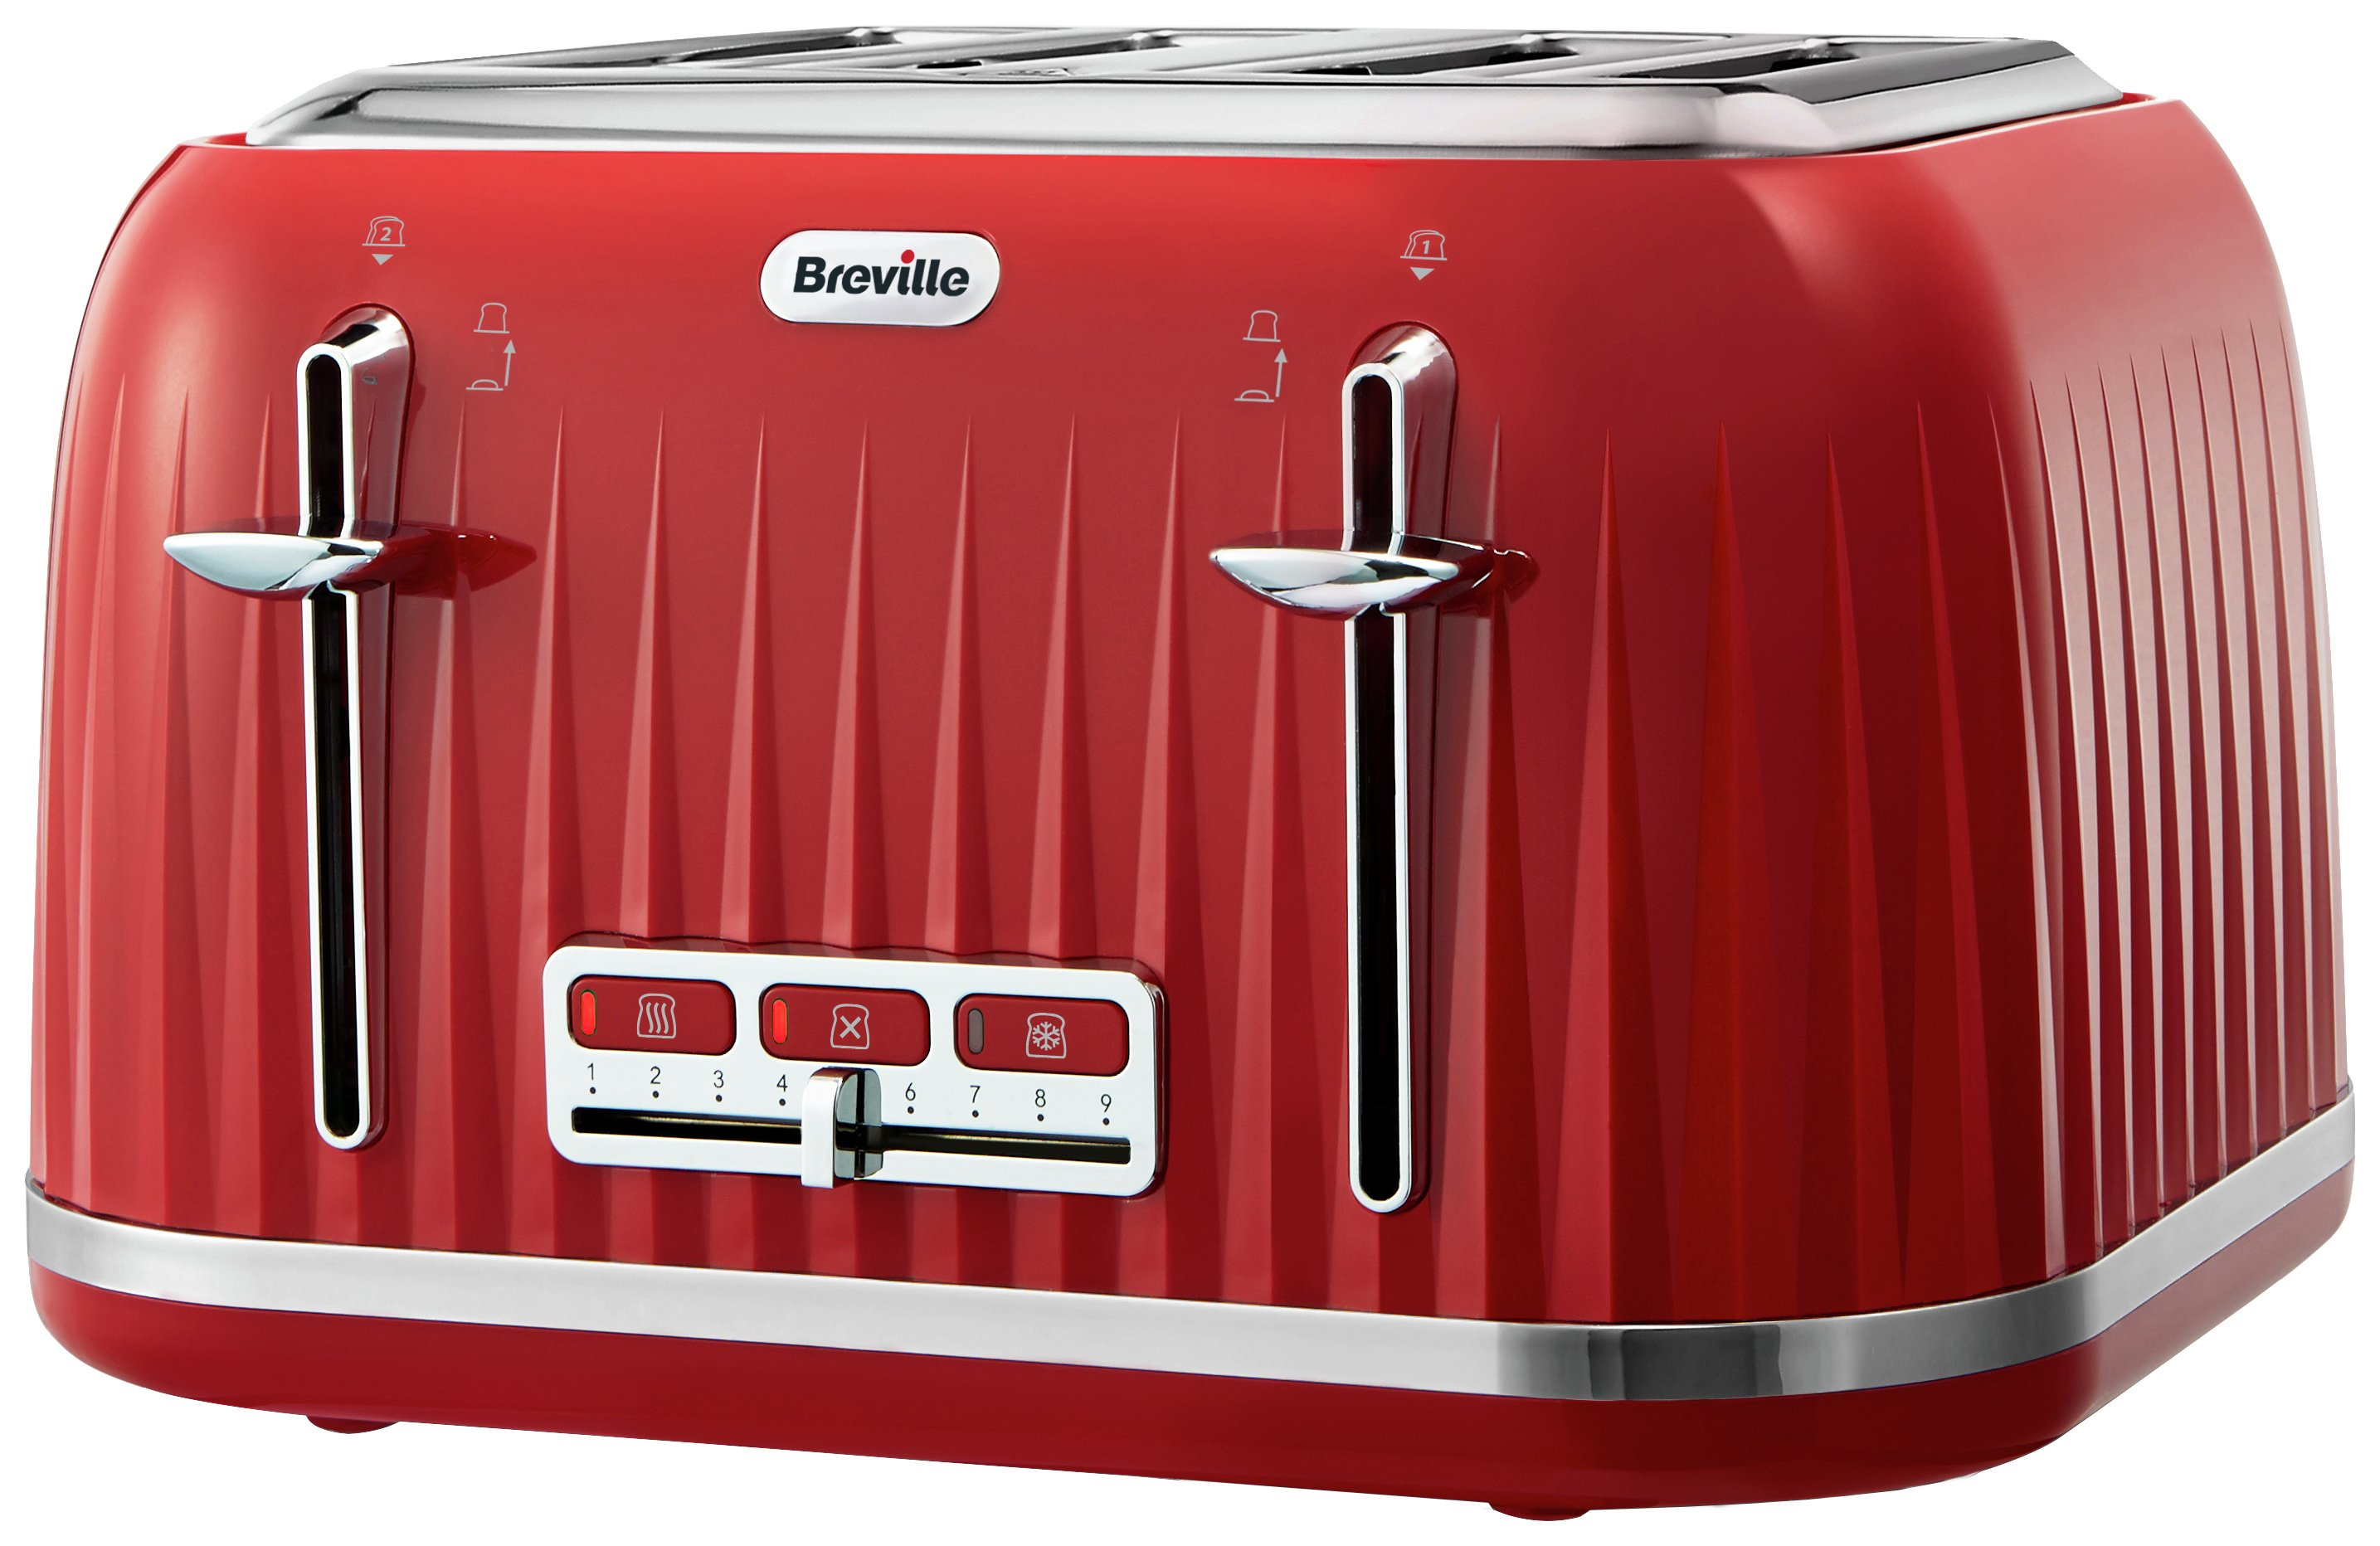 Image of Breville - Toaster - Impressions - 4 Slice - Red